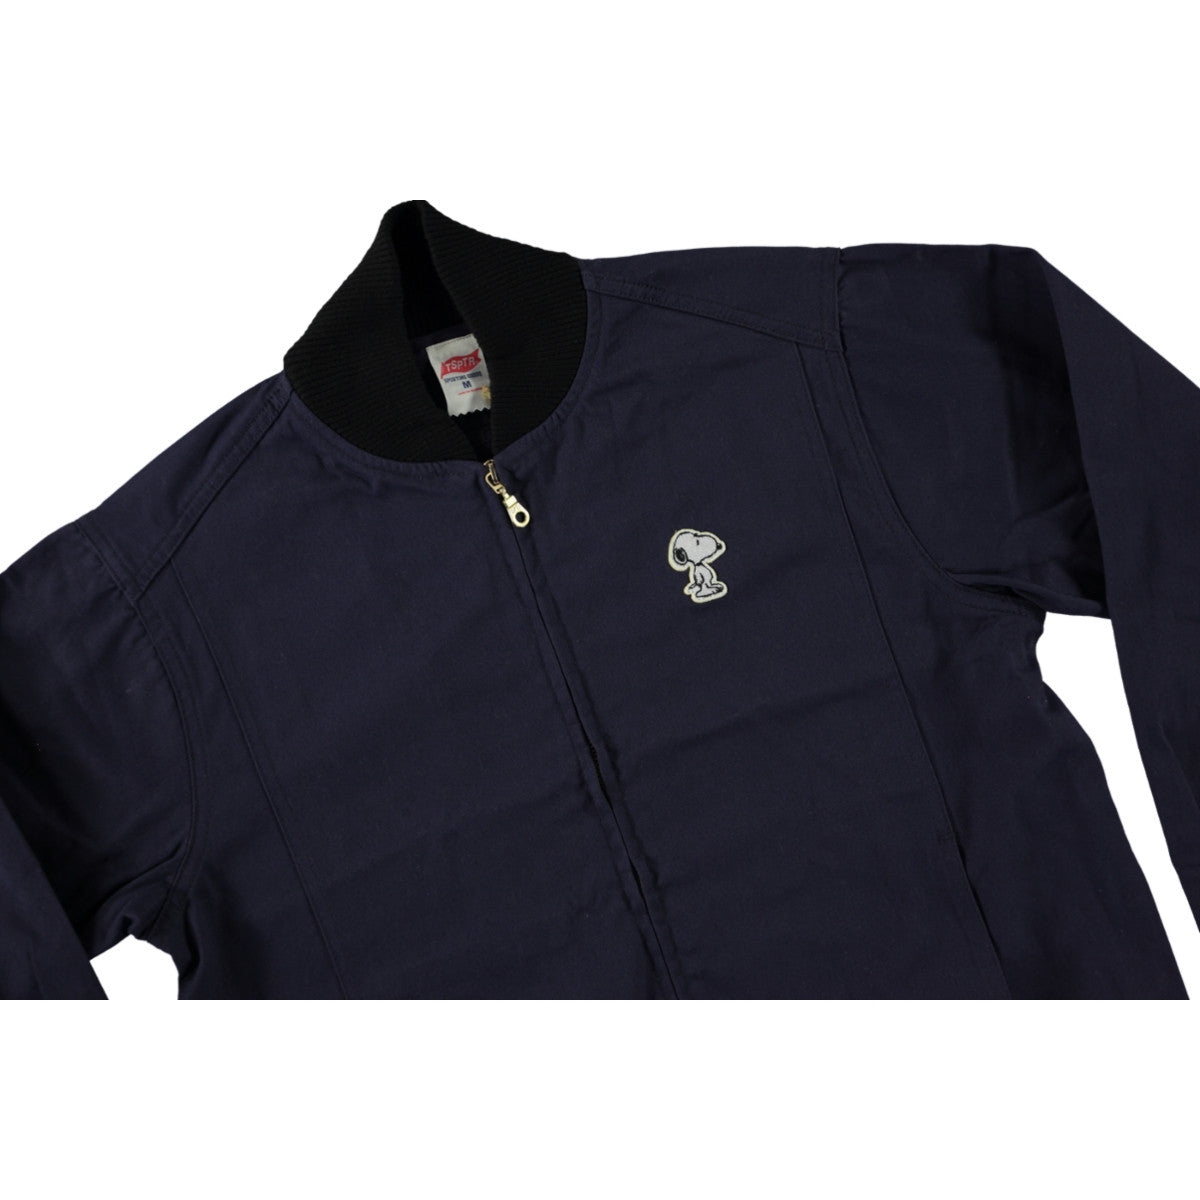 Snoopy Tennis Jacket